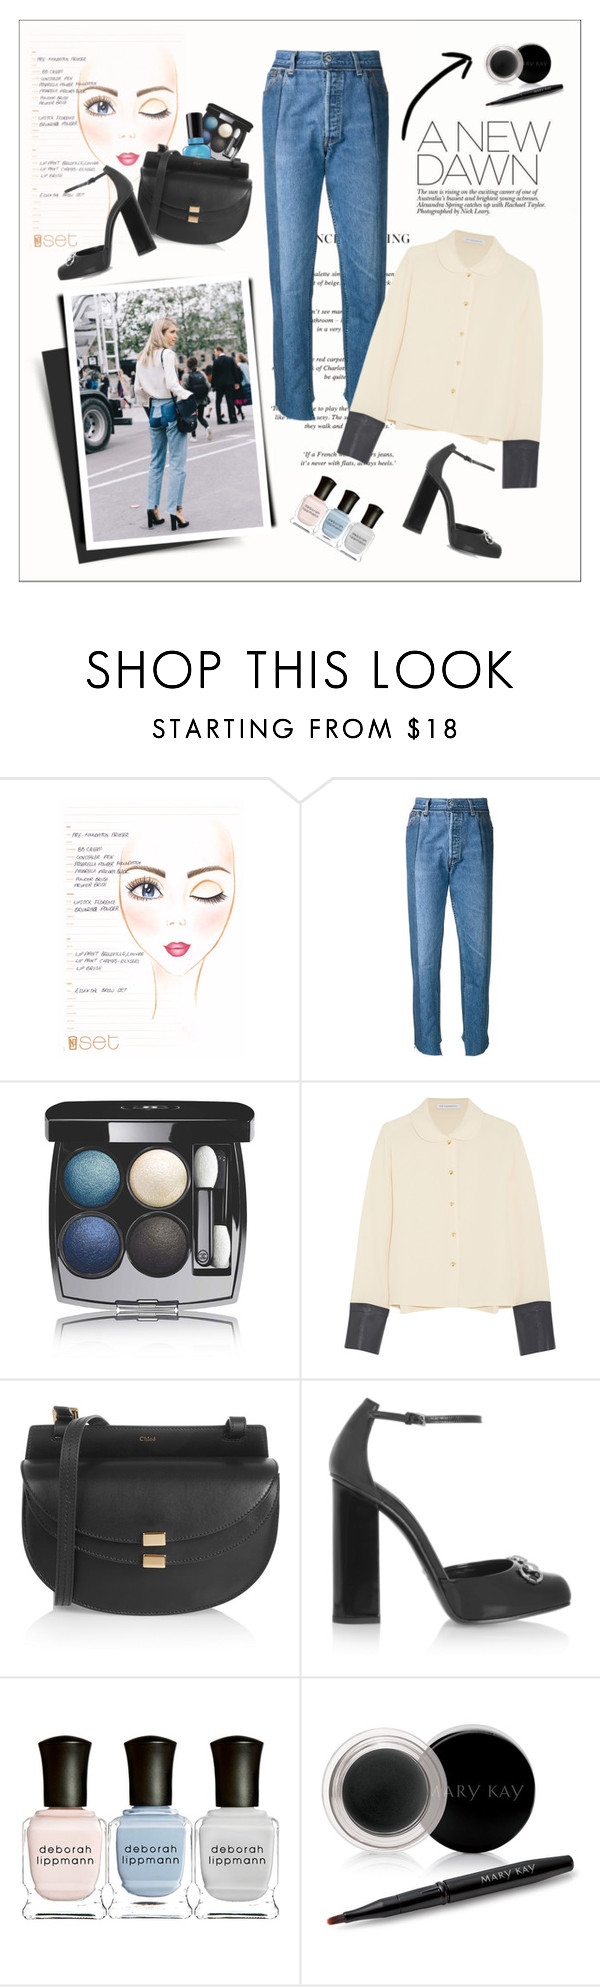 """""""LFW: A new dawn"""" by amaryllis ❤ liked on Polyvore featuring Vetements, Chanel, Sally Hansen, J.W. Anderson, Chloé, Gucci, Deborah Lippmann and Mary Kay"""